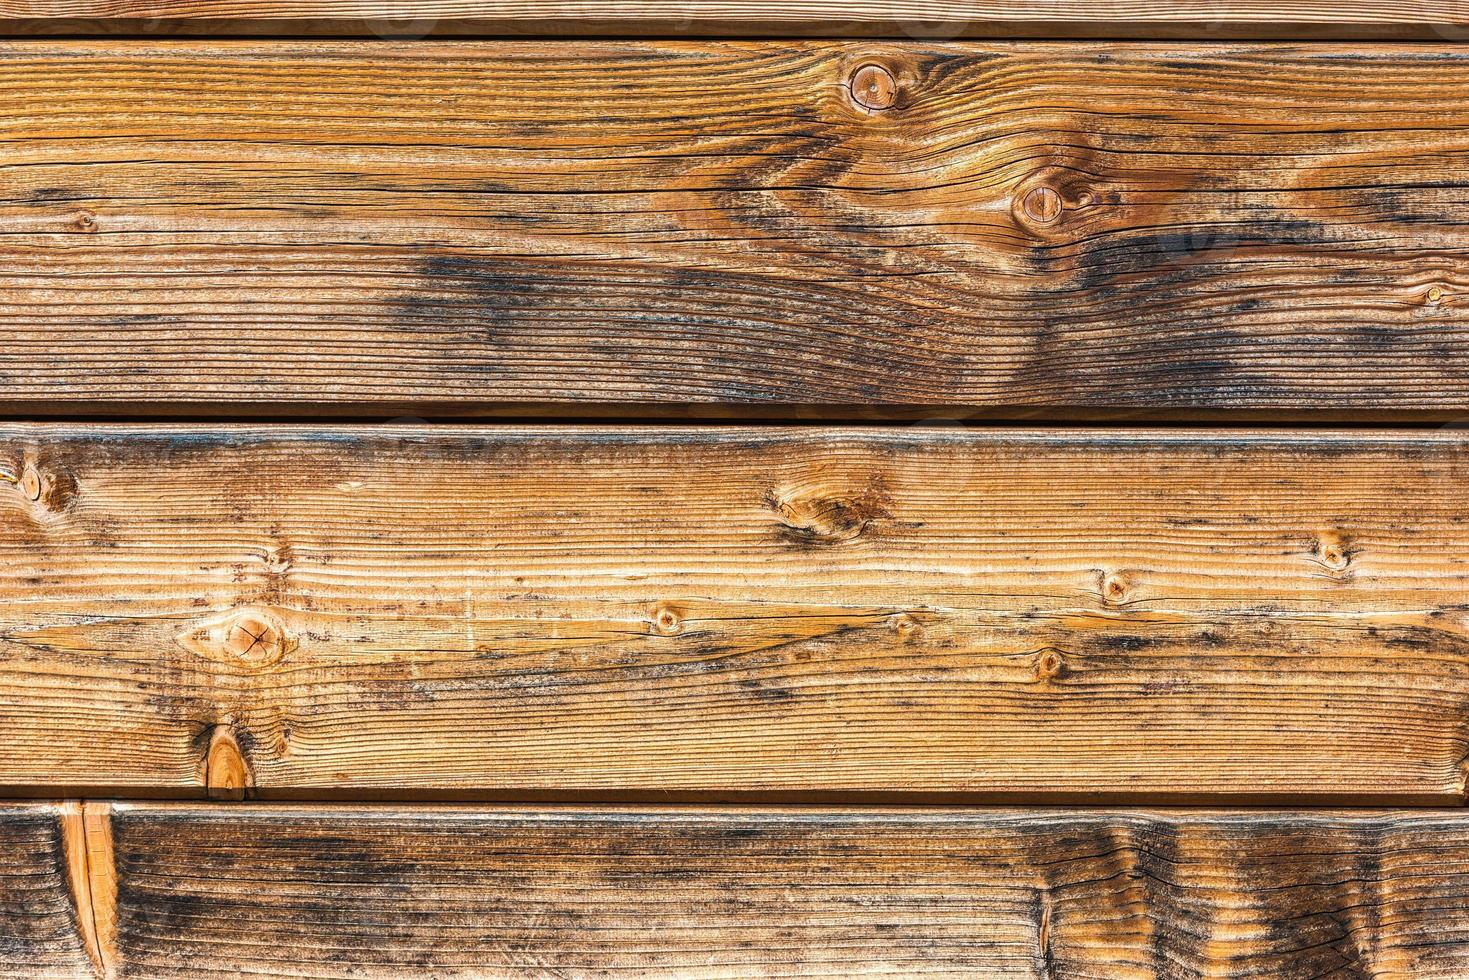 Old wooden plank surface background photo